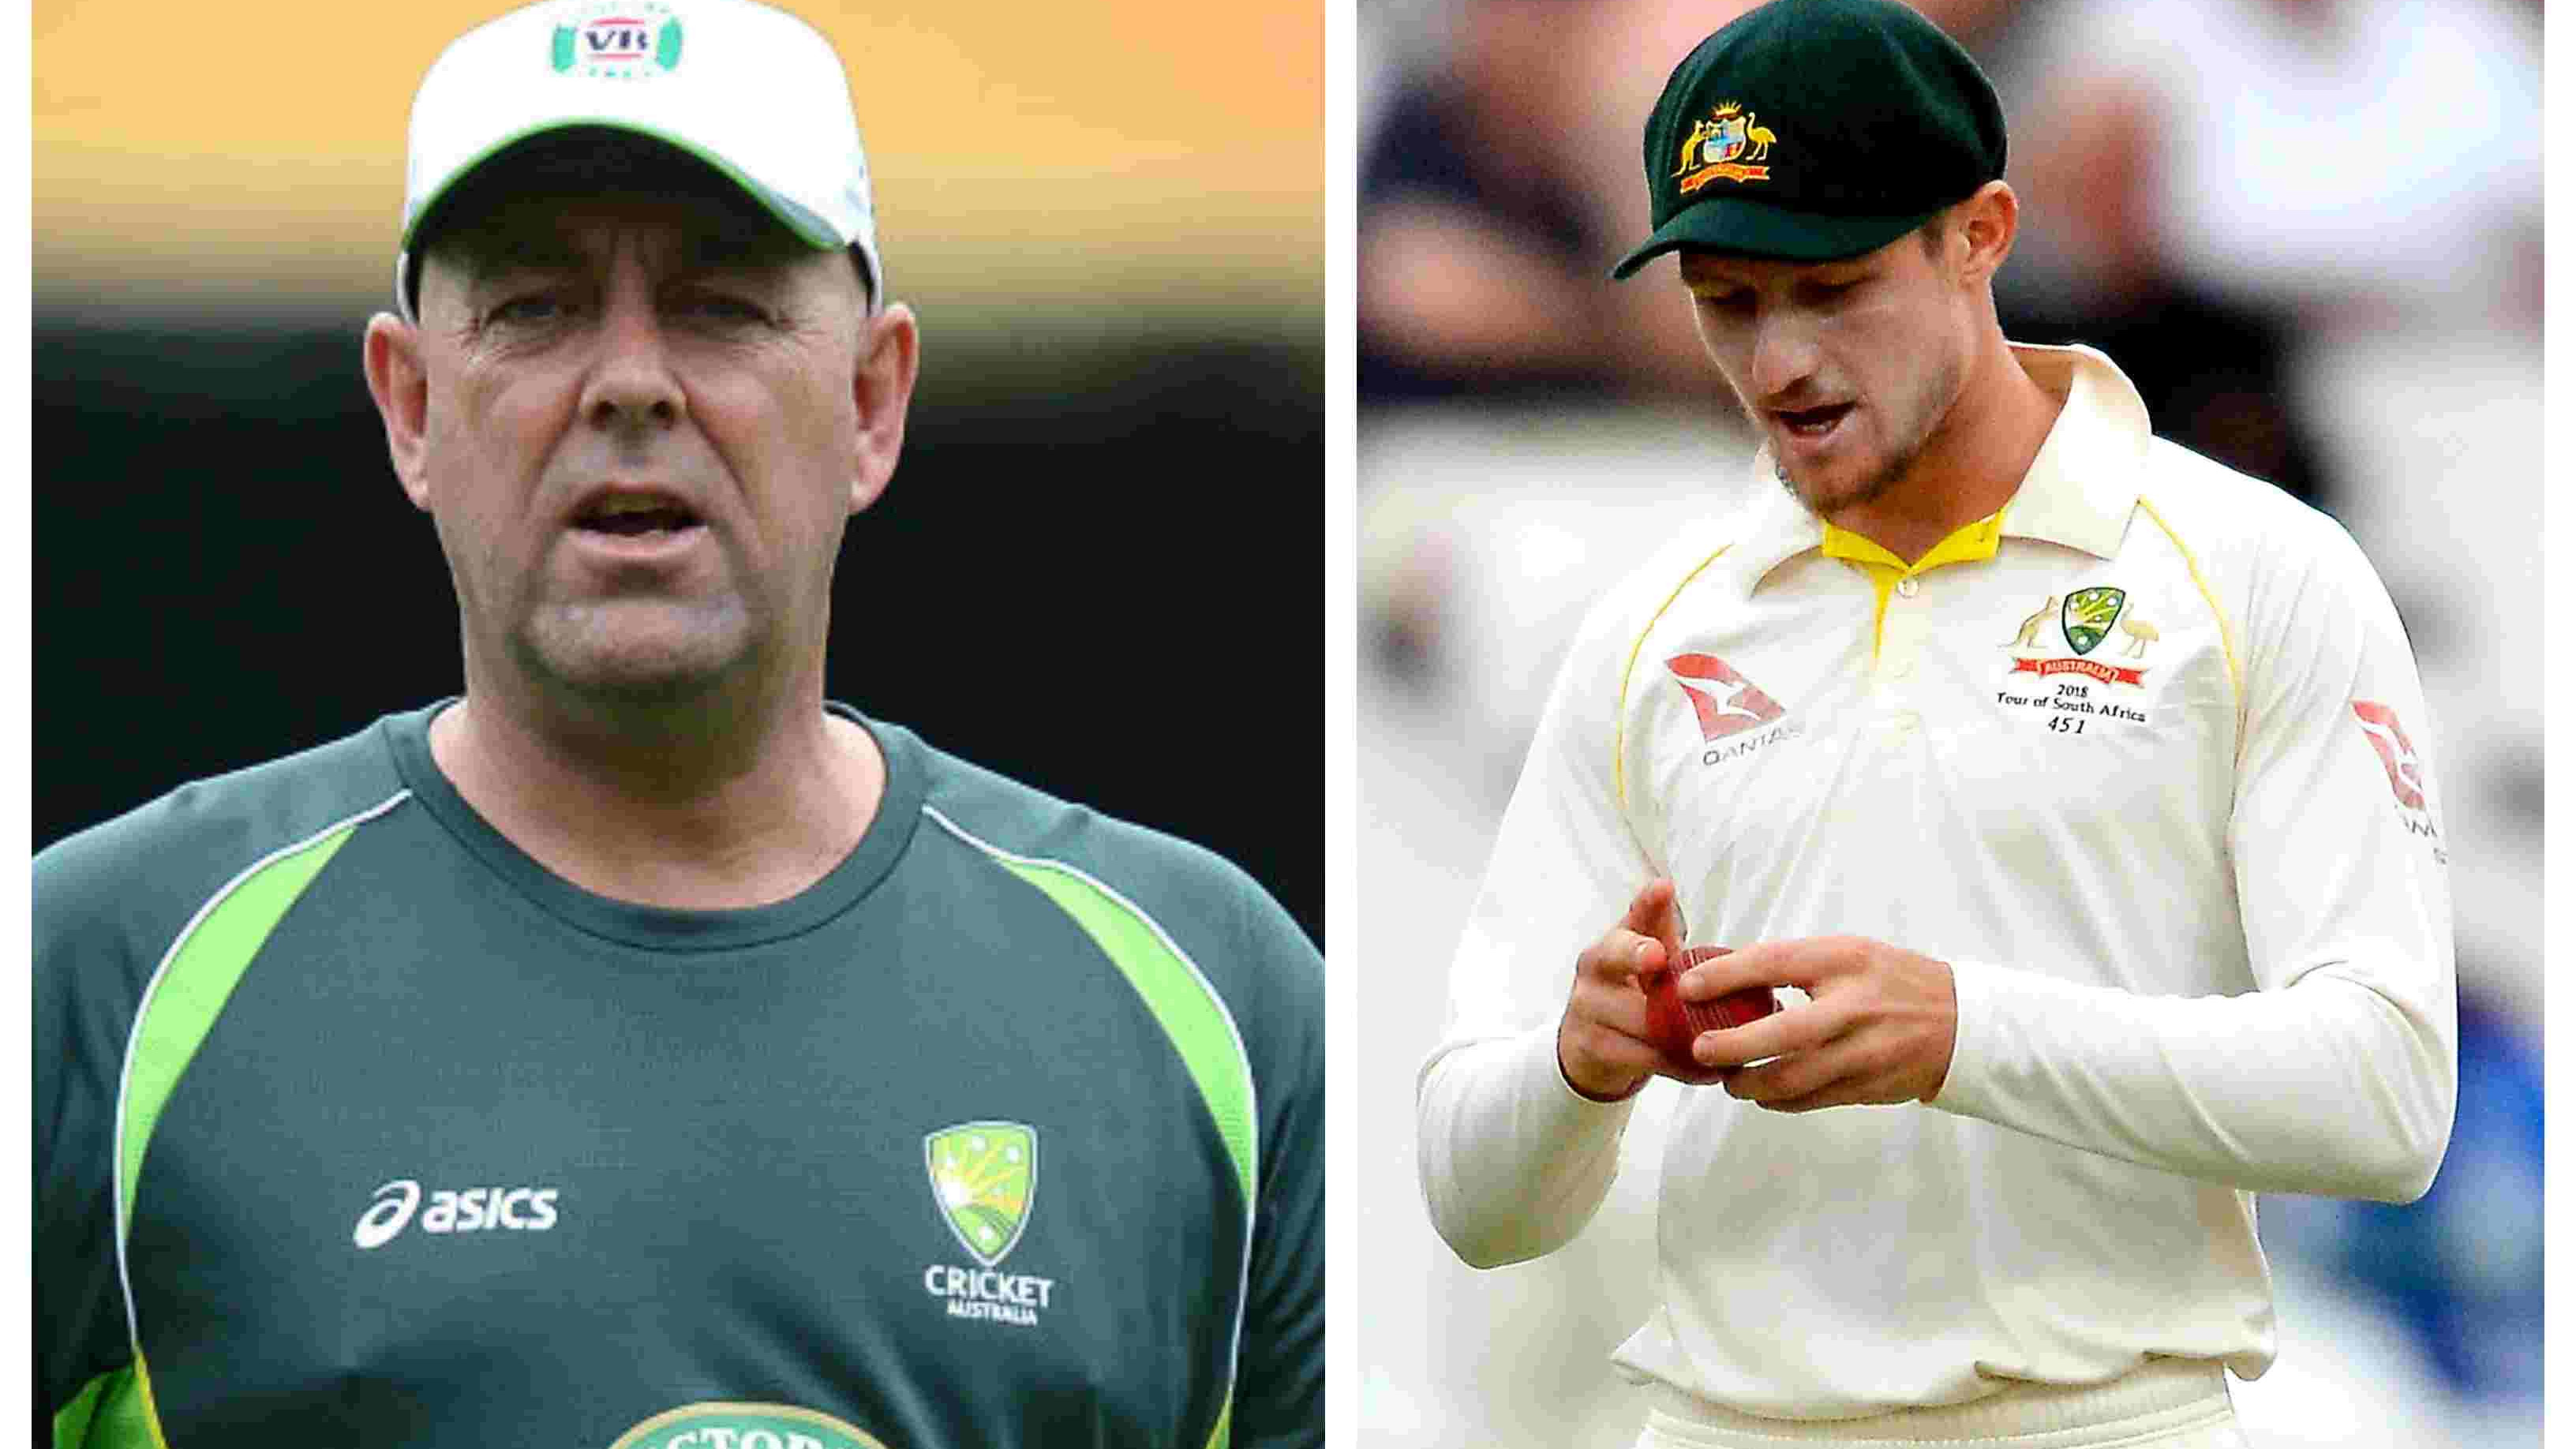 Bancroft should have informed us when asked to tamper the ball by Warner, says Darren Lehmann